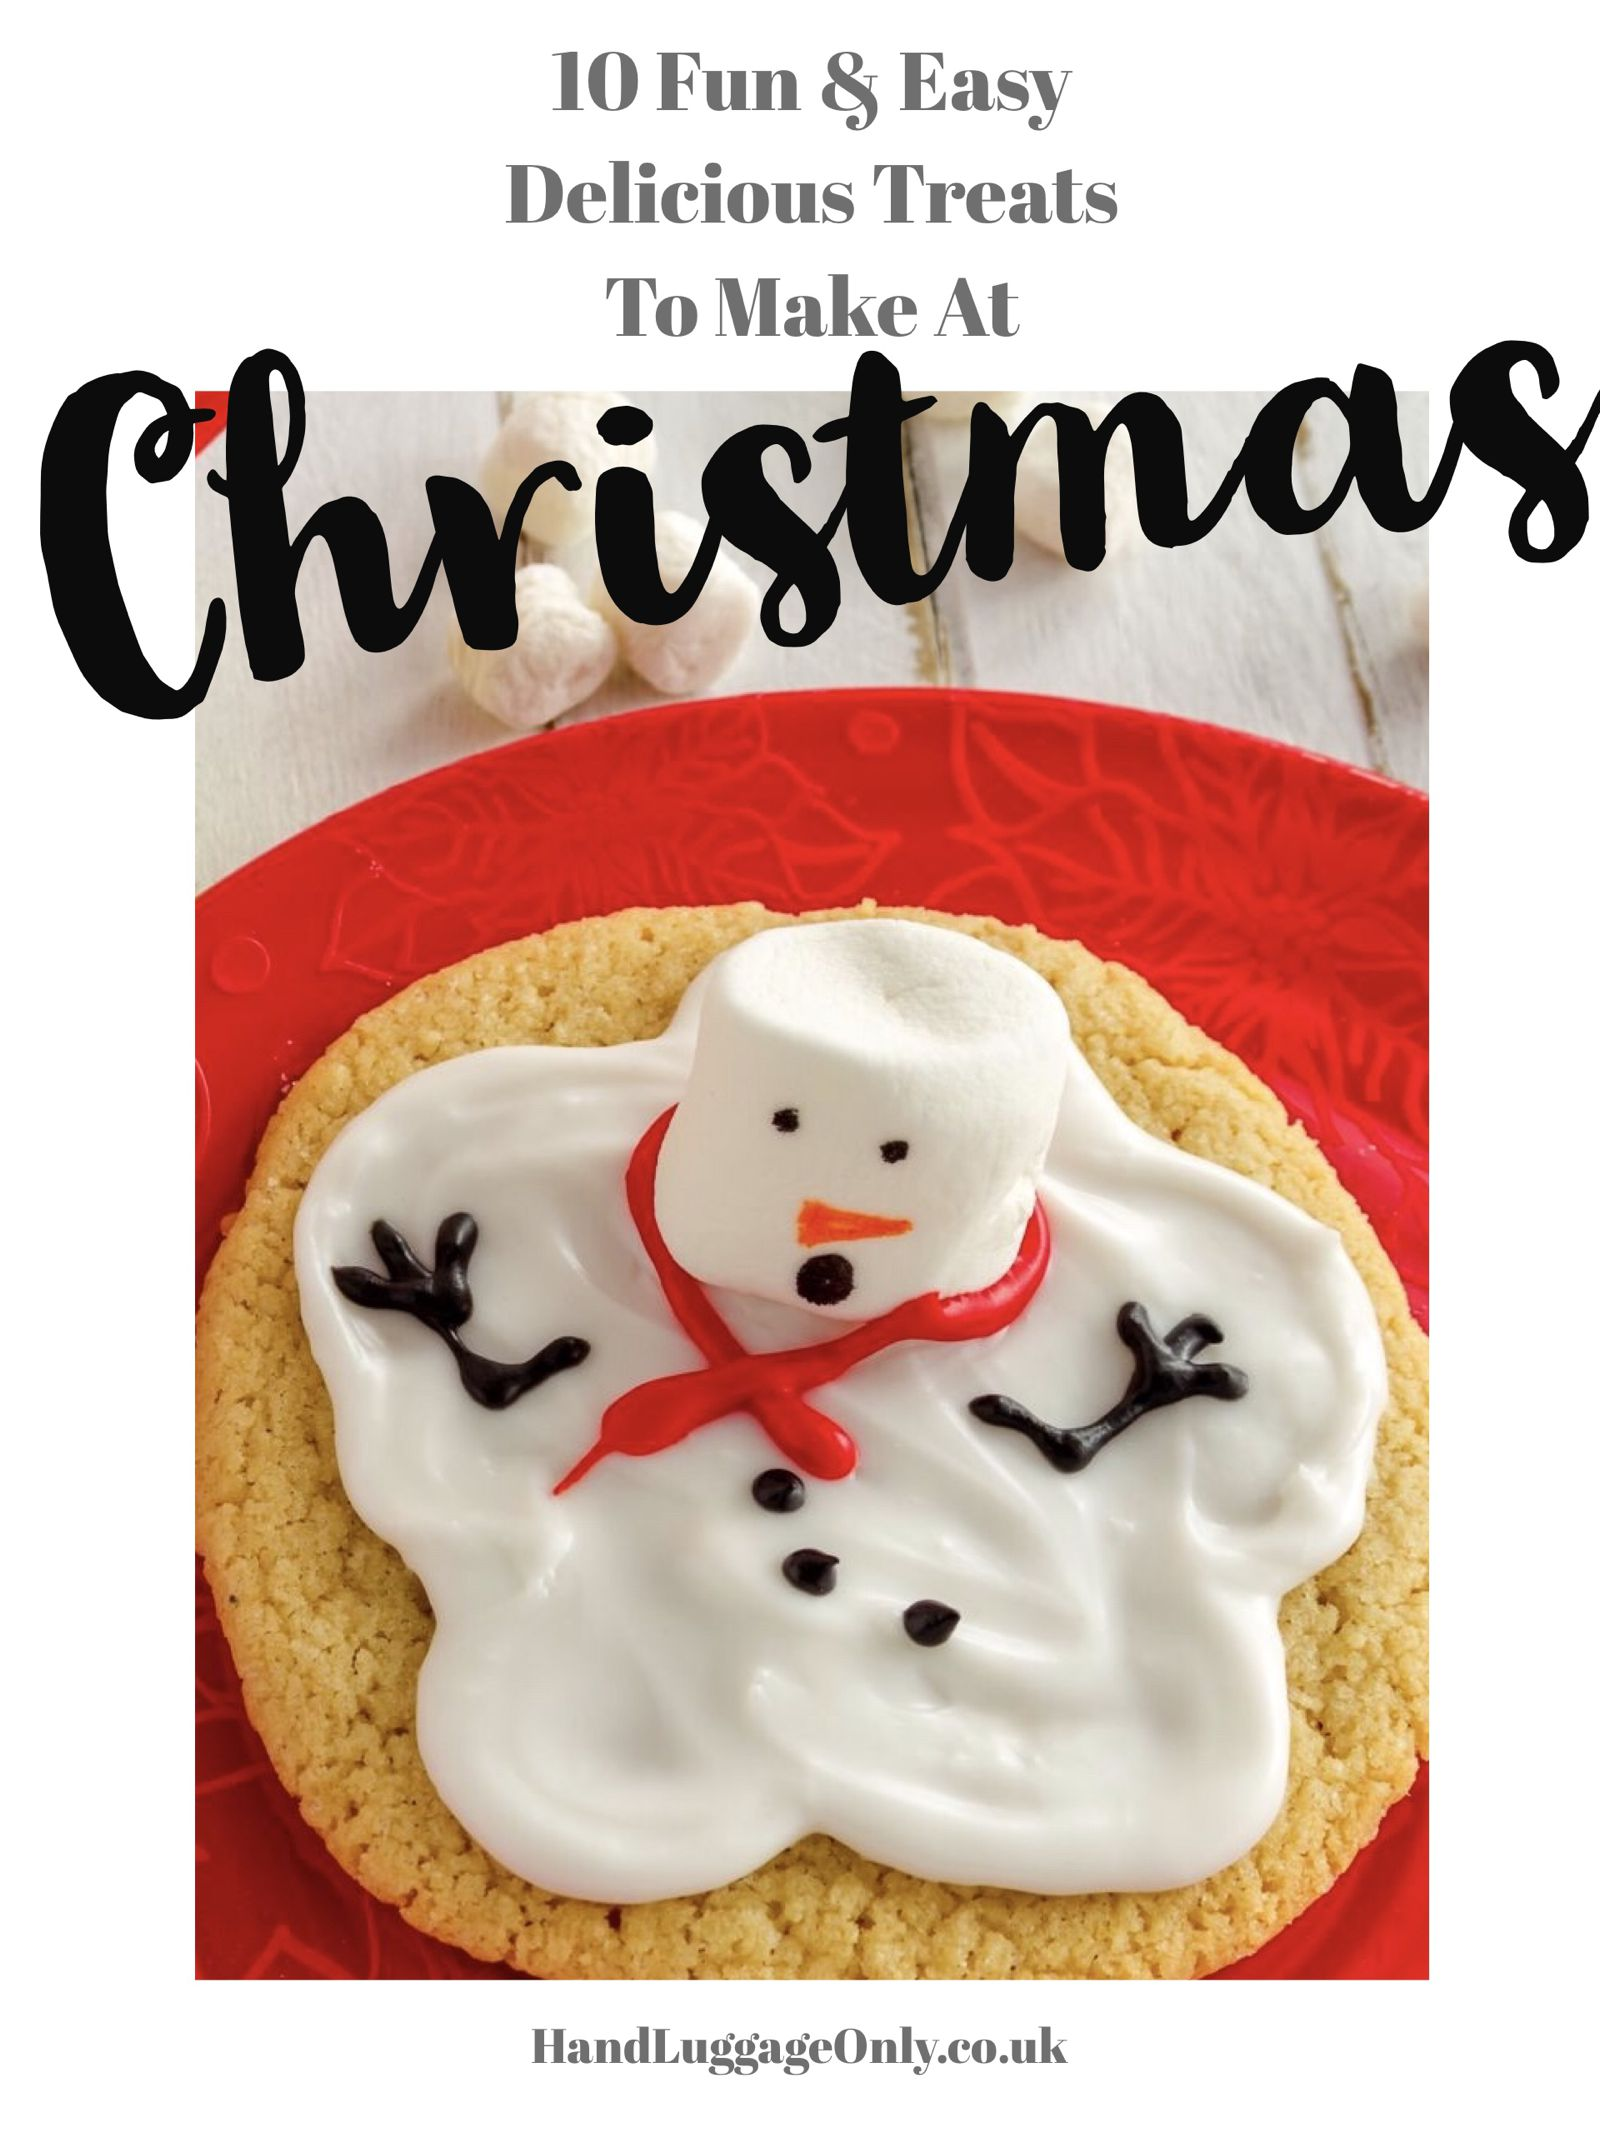 10 Fun, Easy And Delicious Christmas Treats To Make (13)